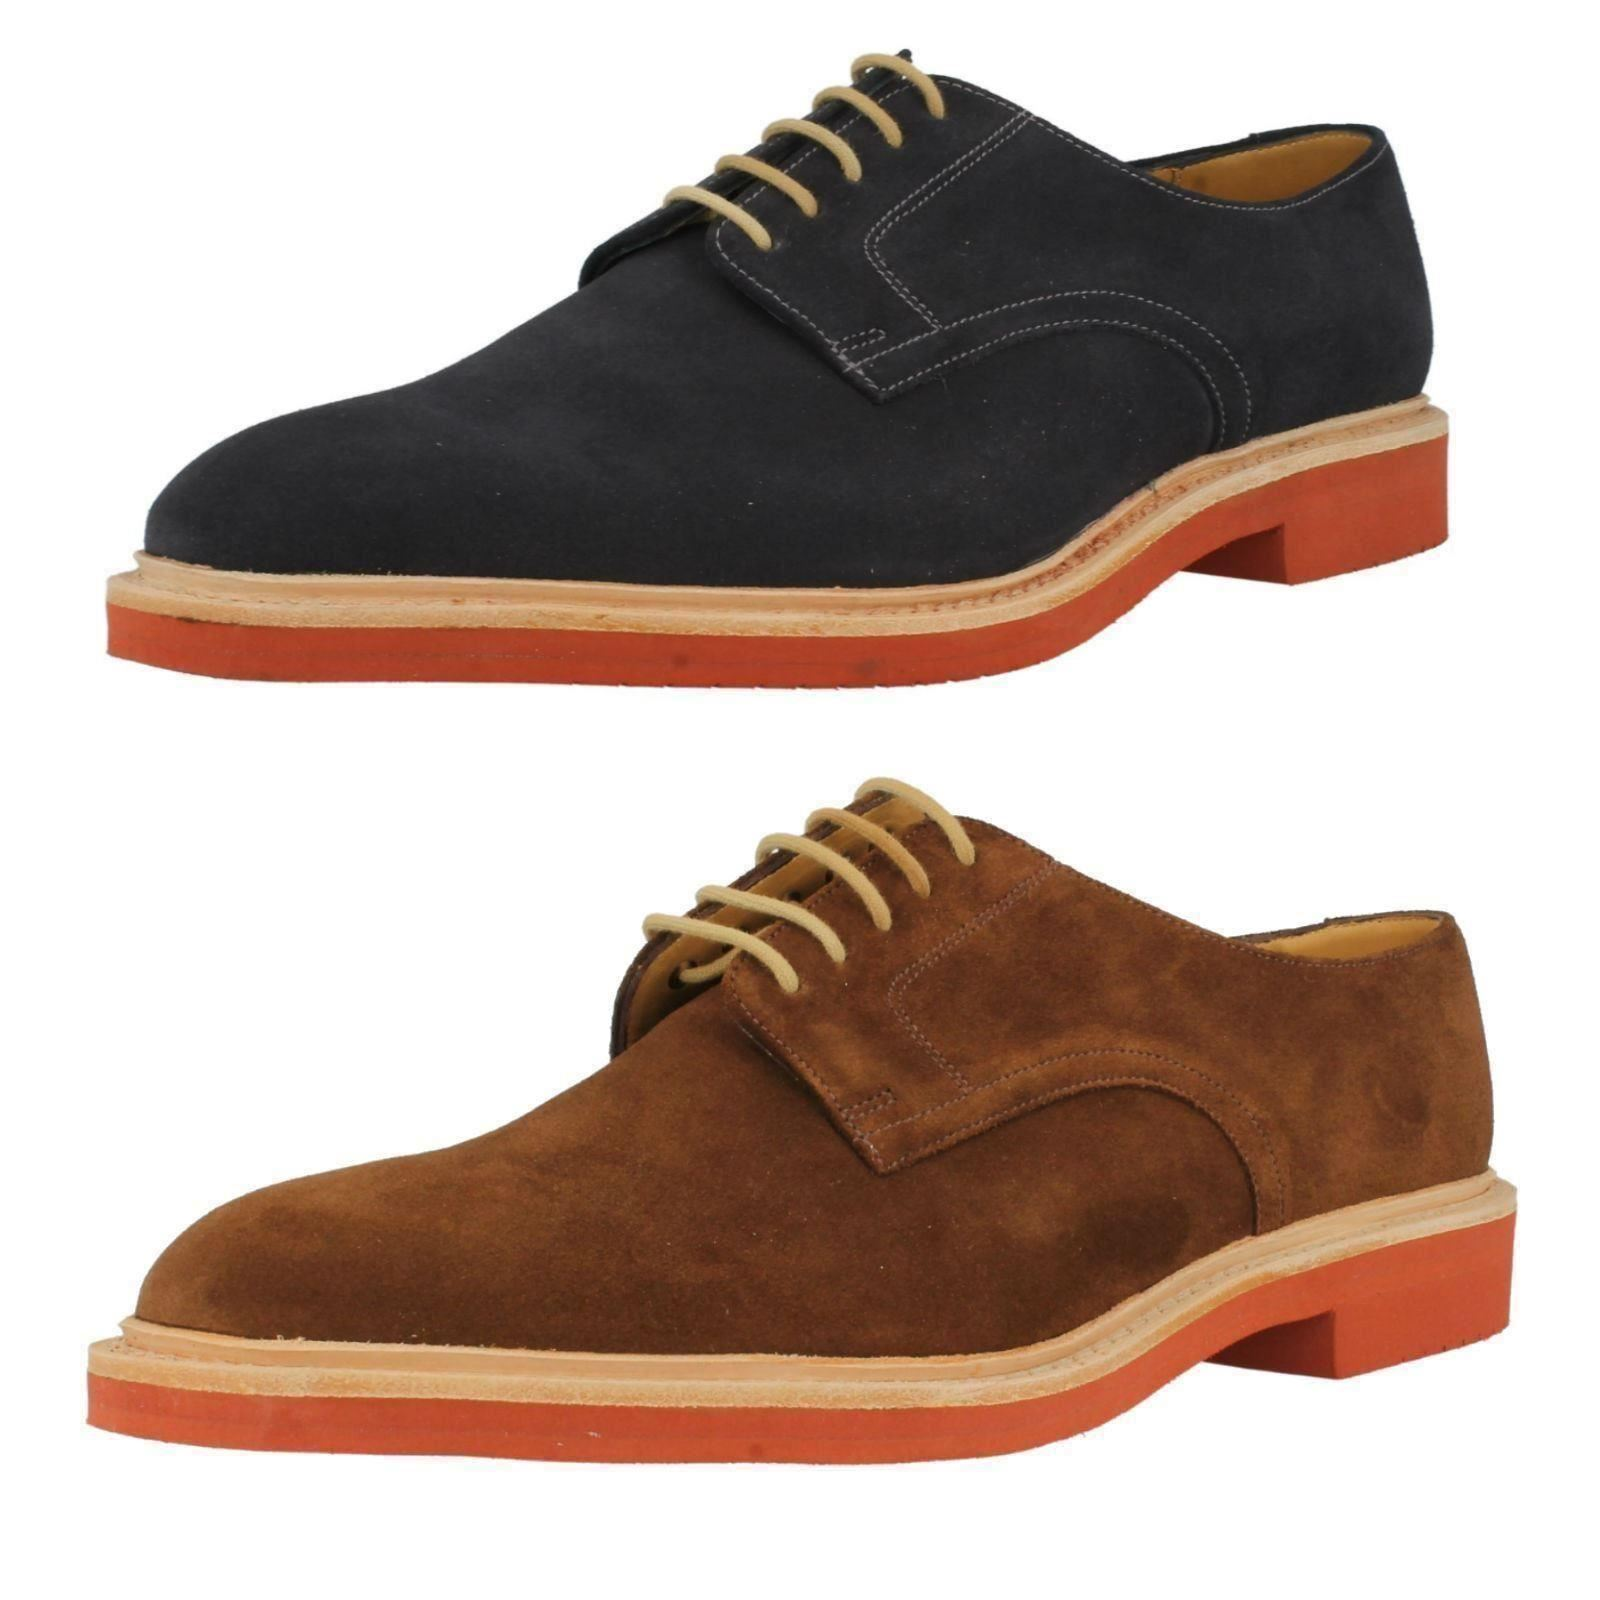 Herren Loake Lace Up Suede  Schuhes  Suede - Morrison eb1c28